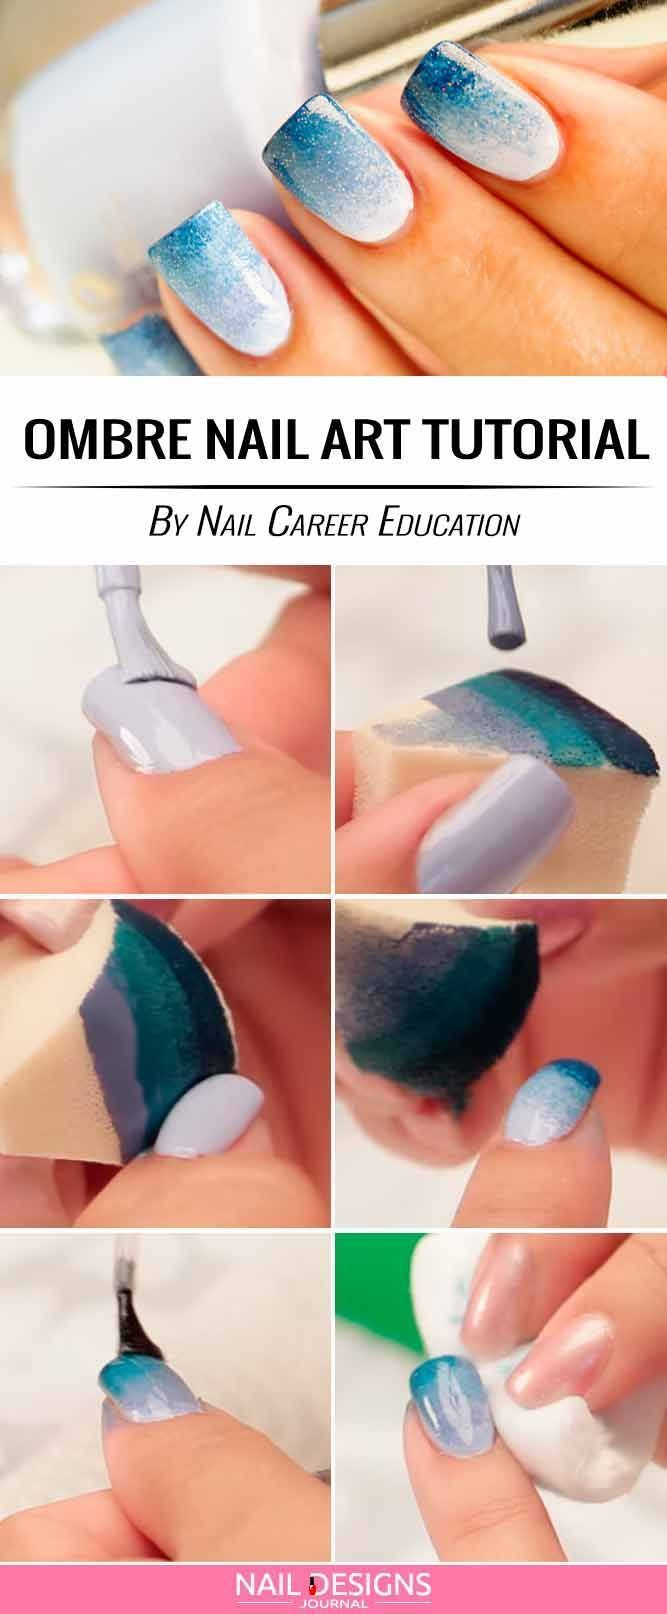 Cute and simple nail designs at home see more naildesignsjourna